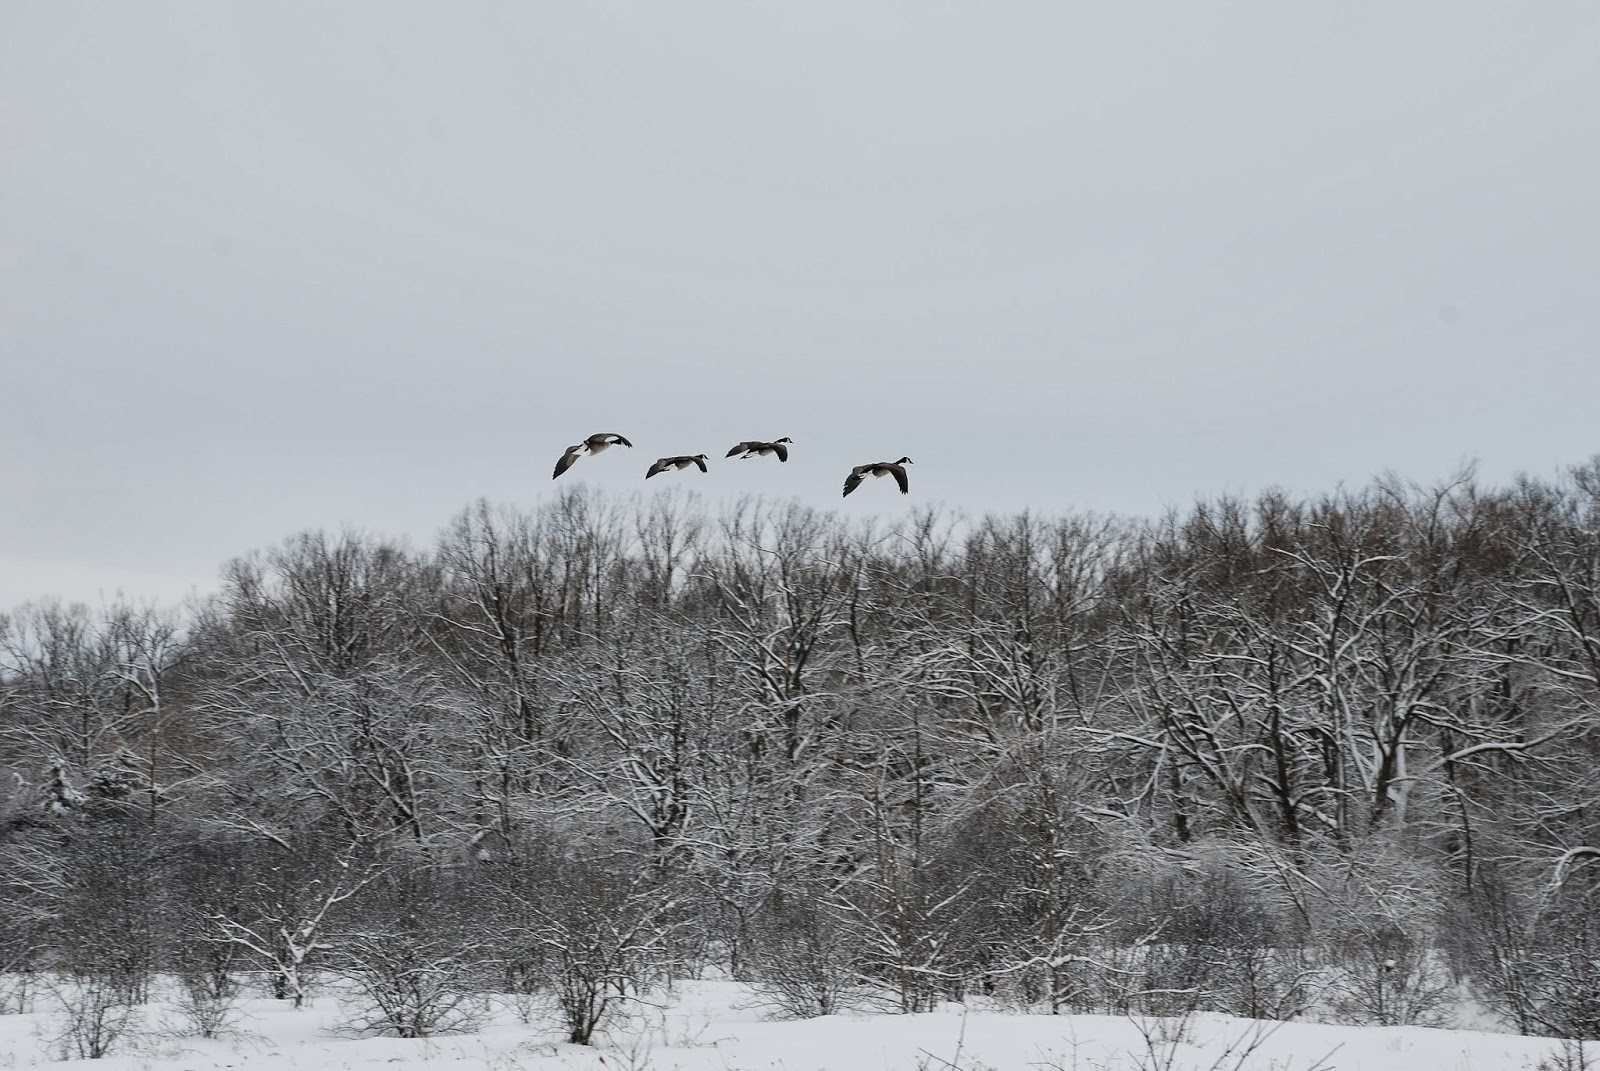 Canadian Geese coming in for a landing in winter